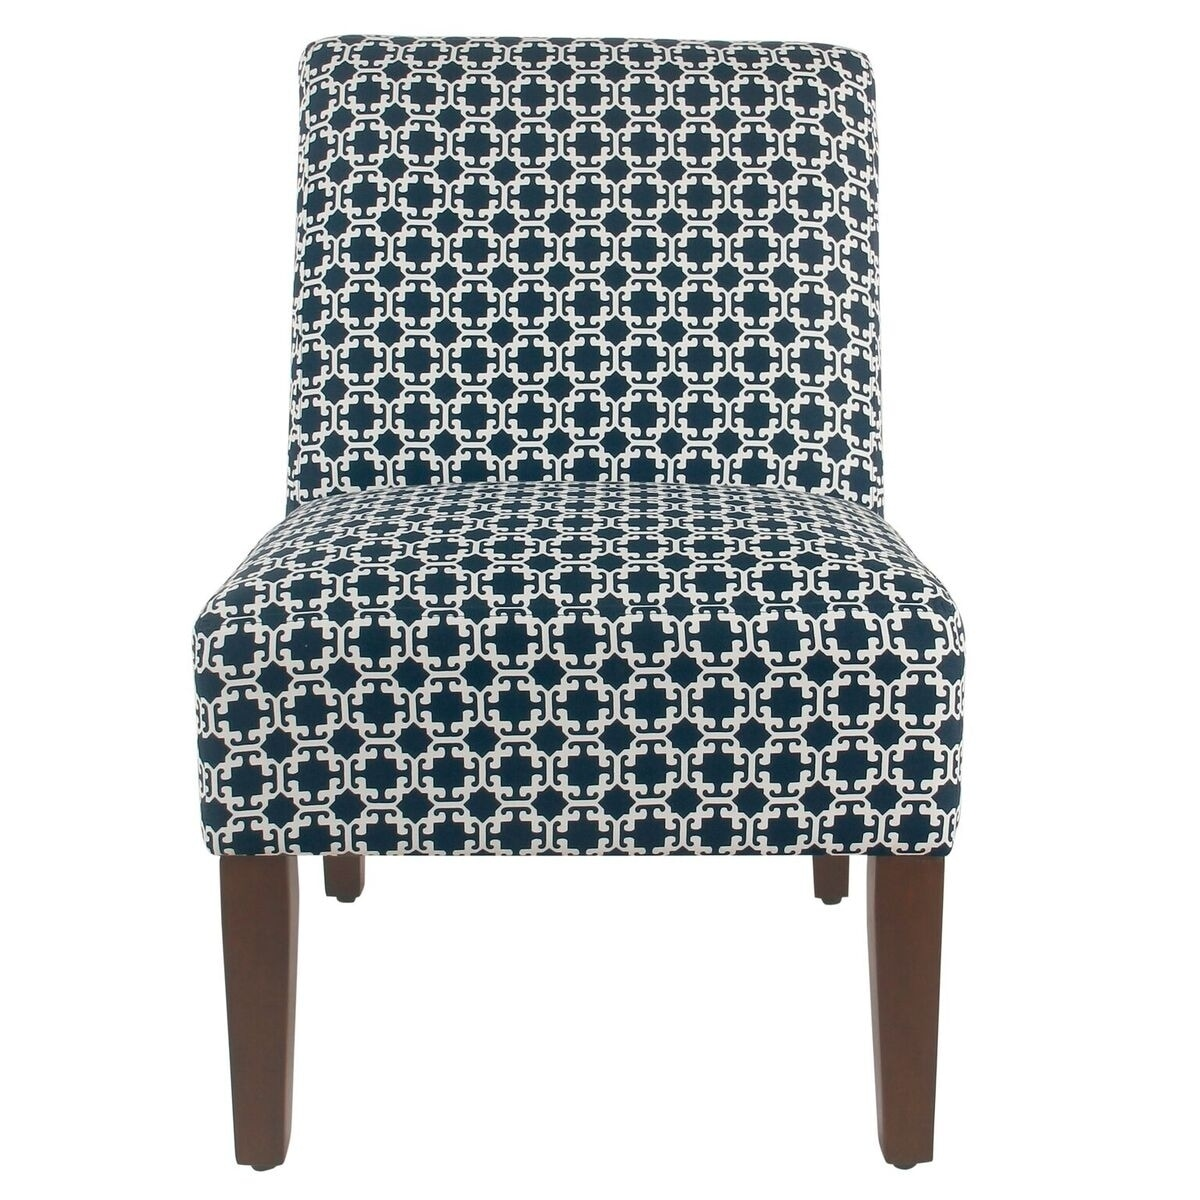 HomePop Armless Accent Chair - Indigo Lattice (Dark Blue)